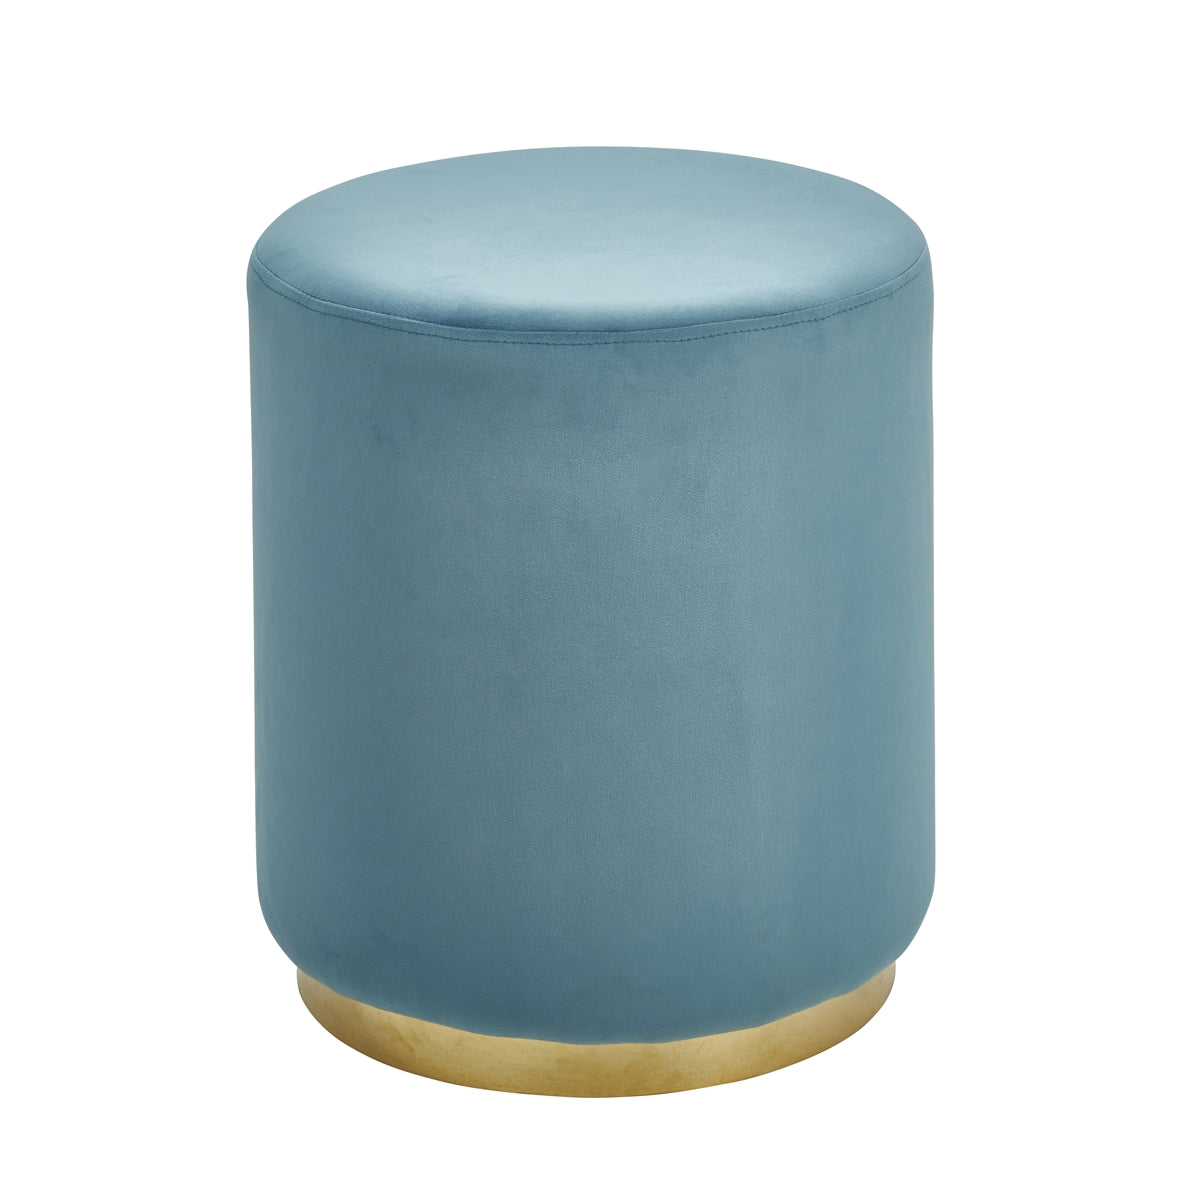 Velveteen Stool, Gold & Teal - Casa Muebles